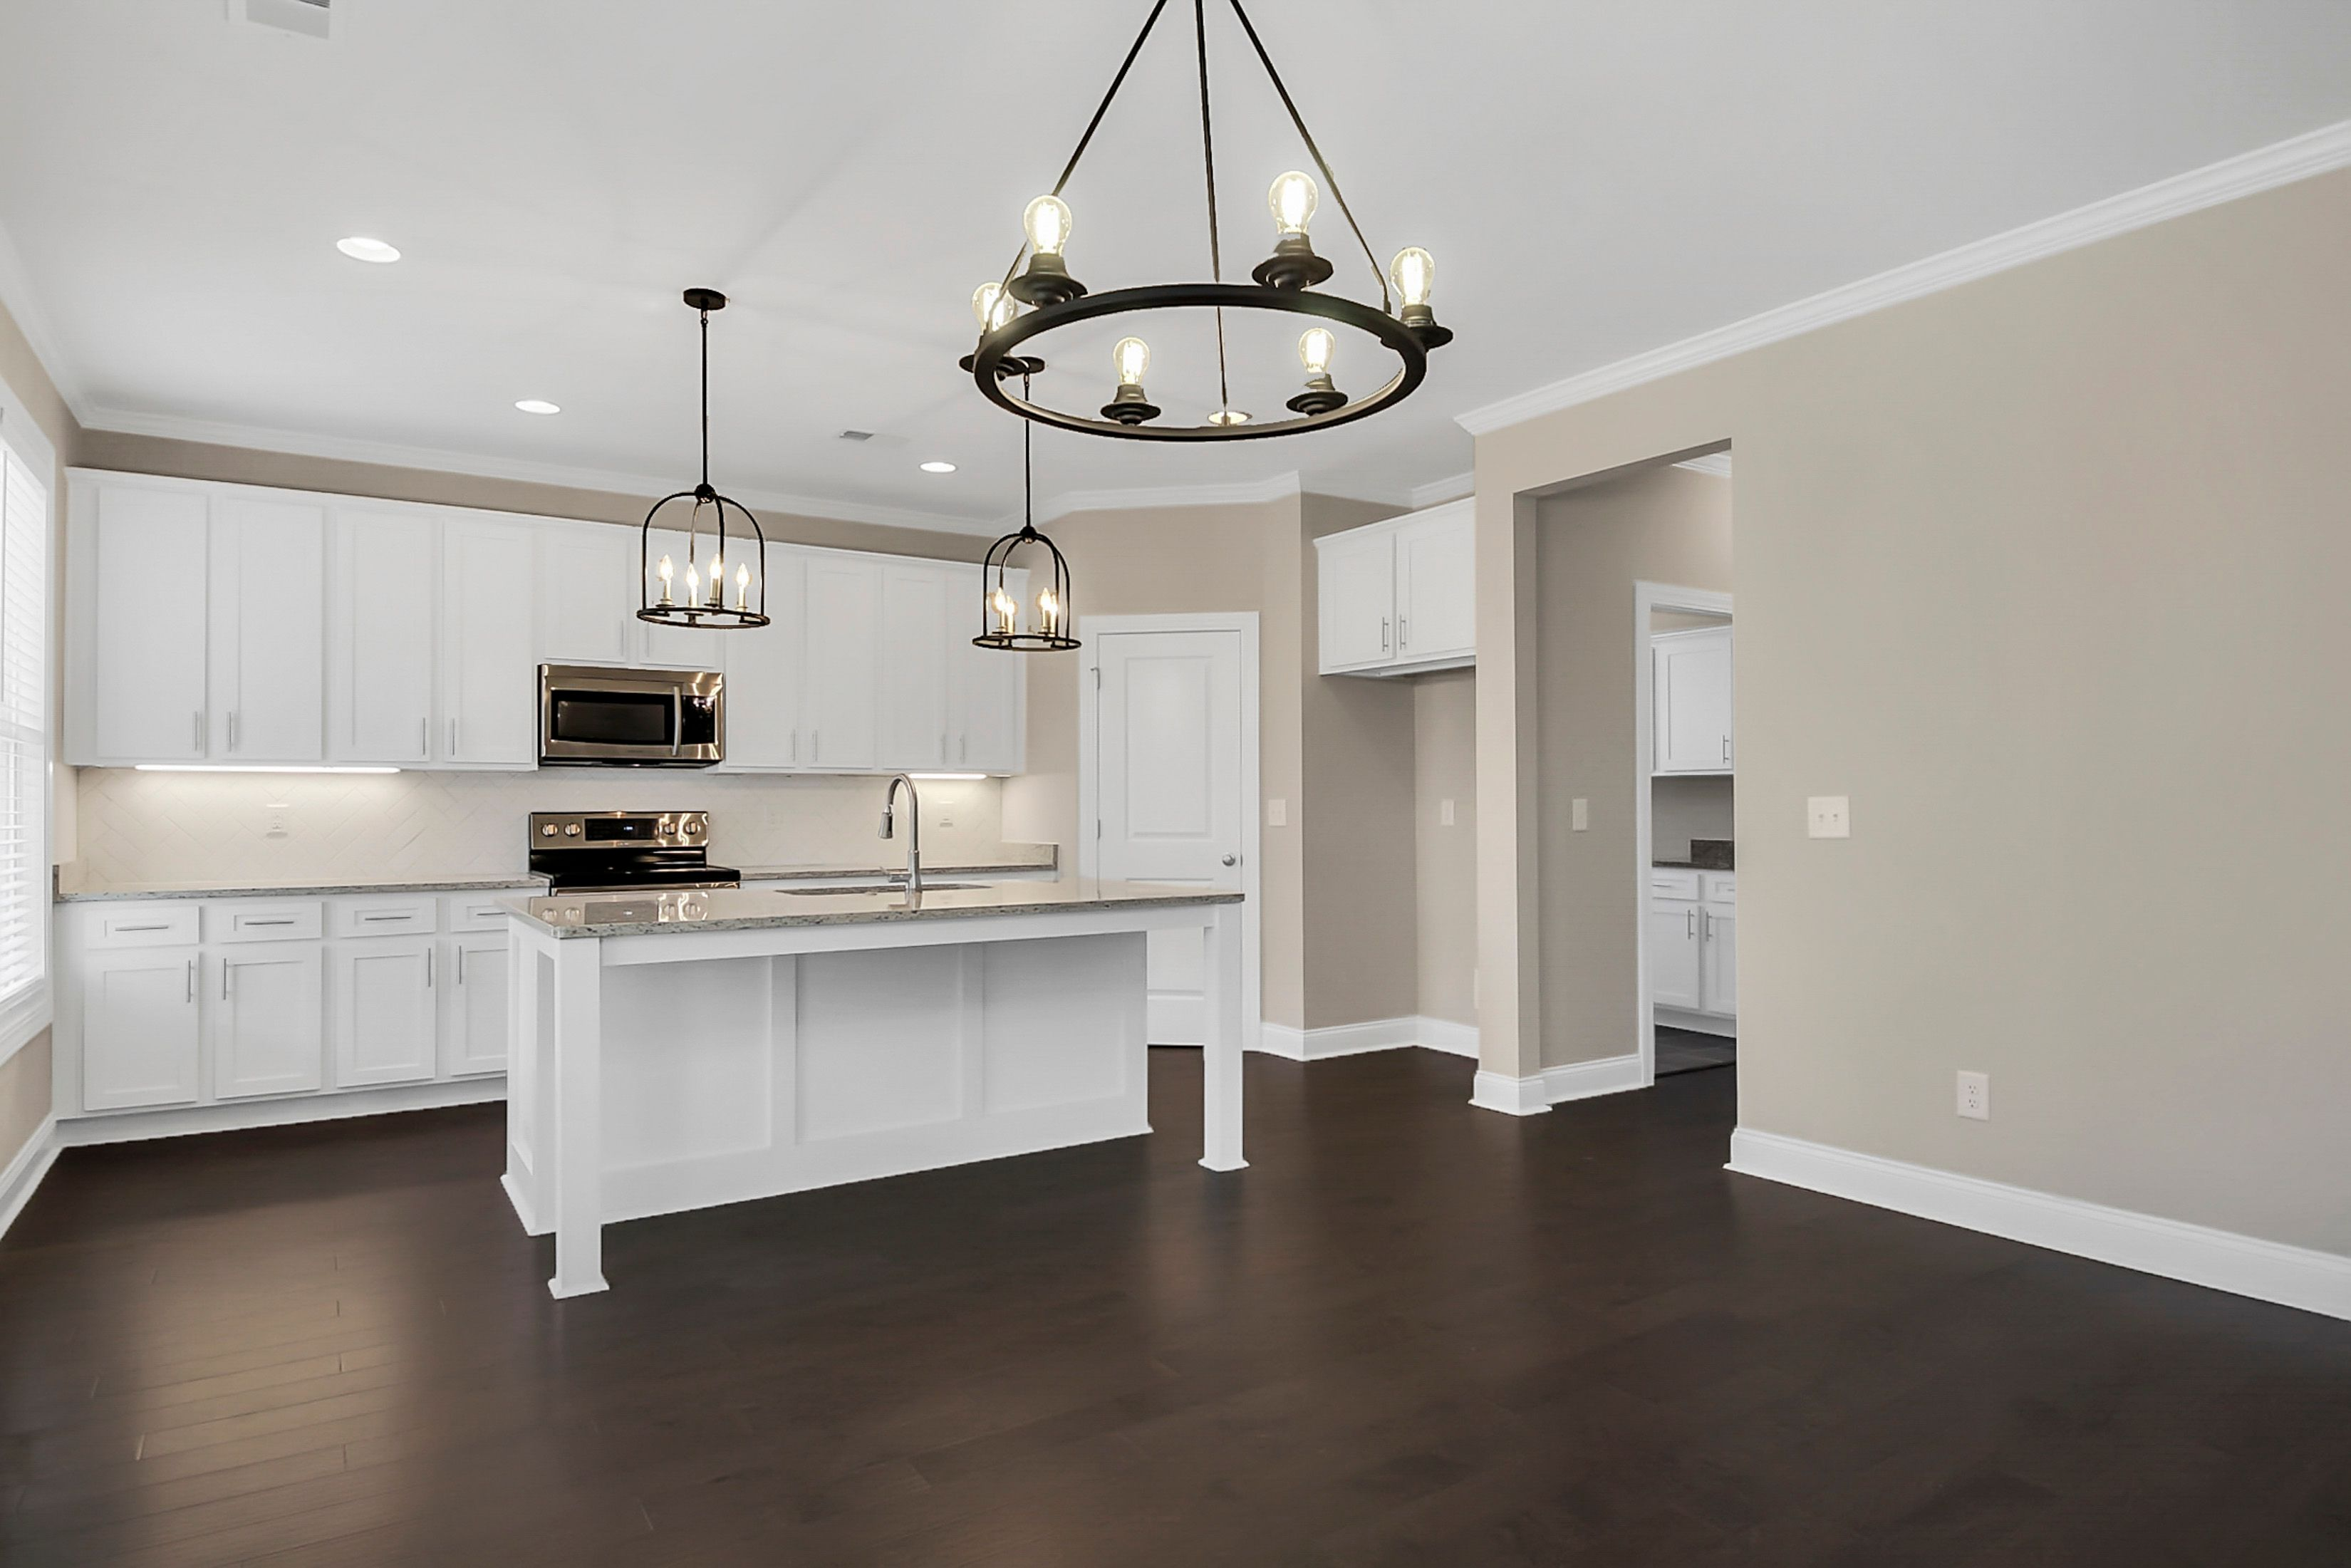 Kitchen featured in the Shorewood- Designer Series By Executive Construction Homes in Columbia, SC